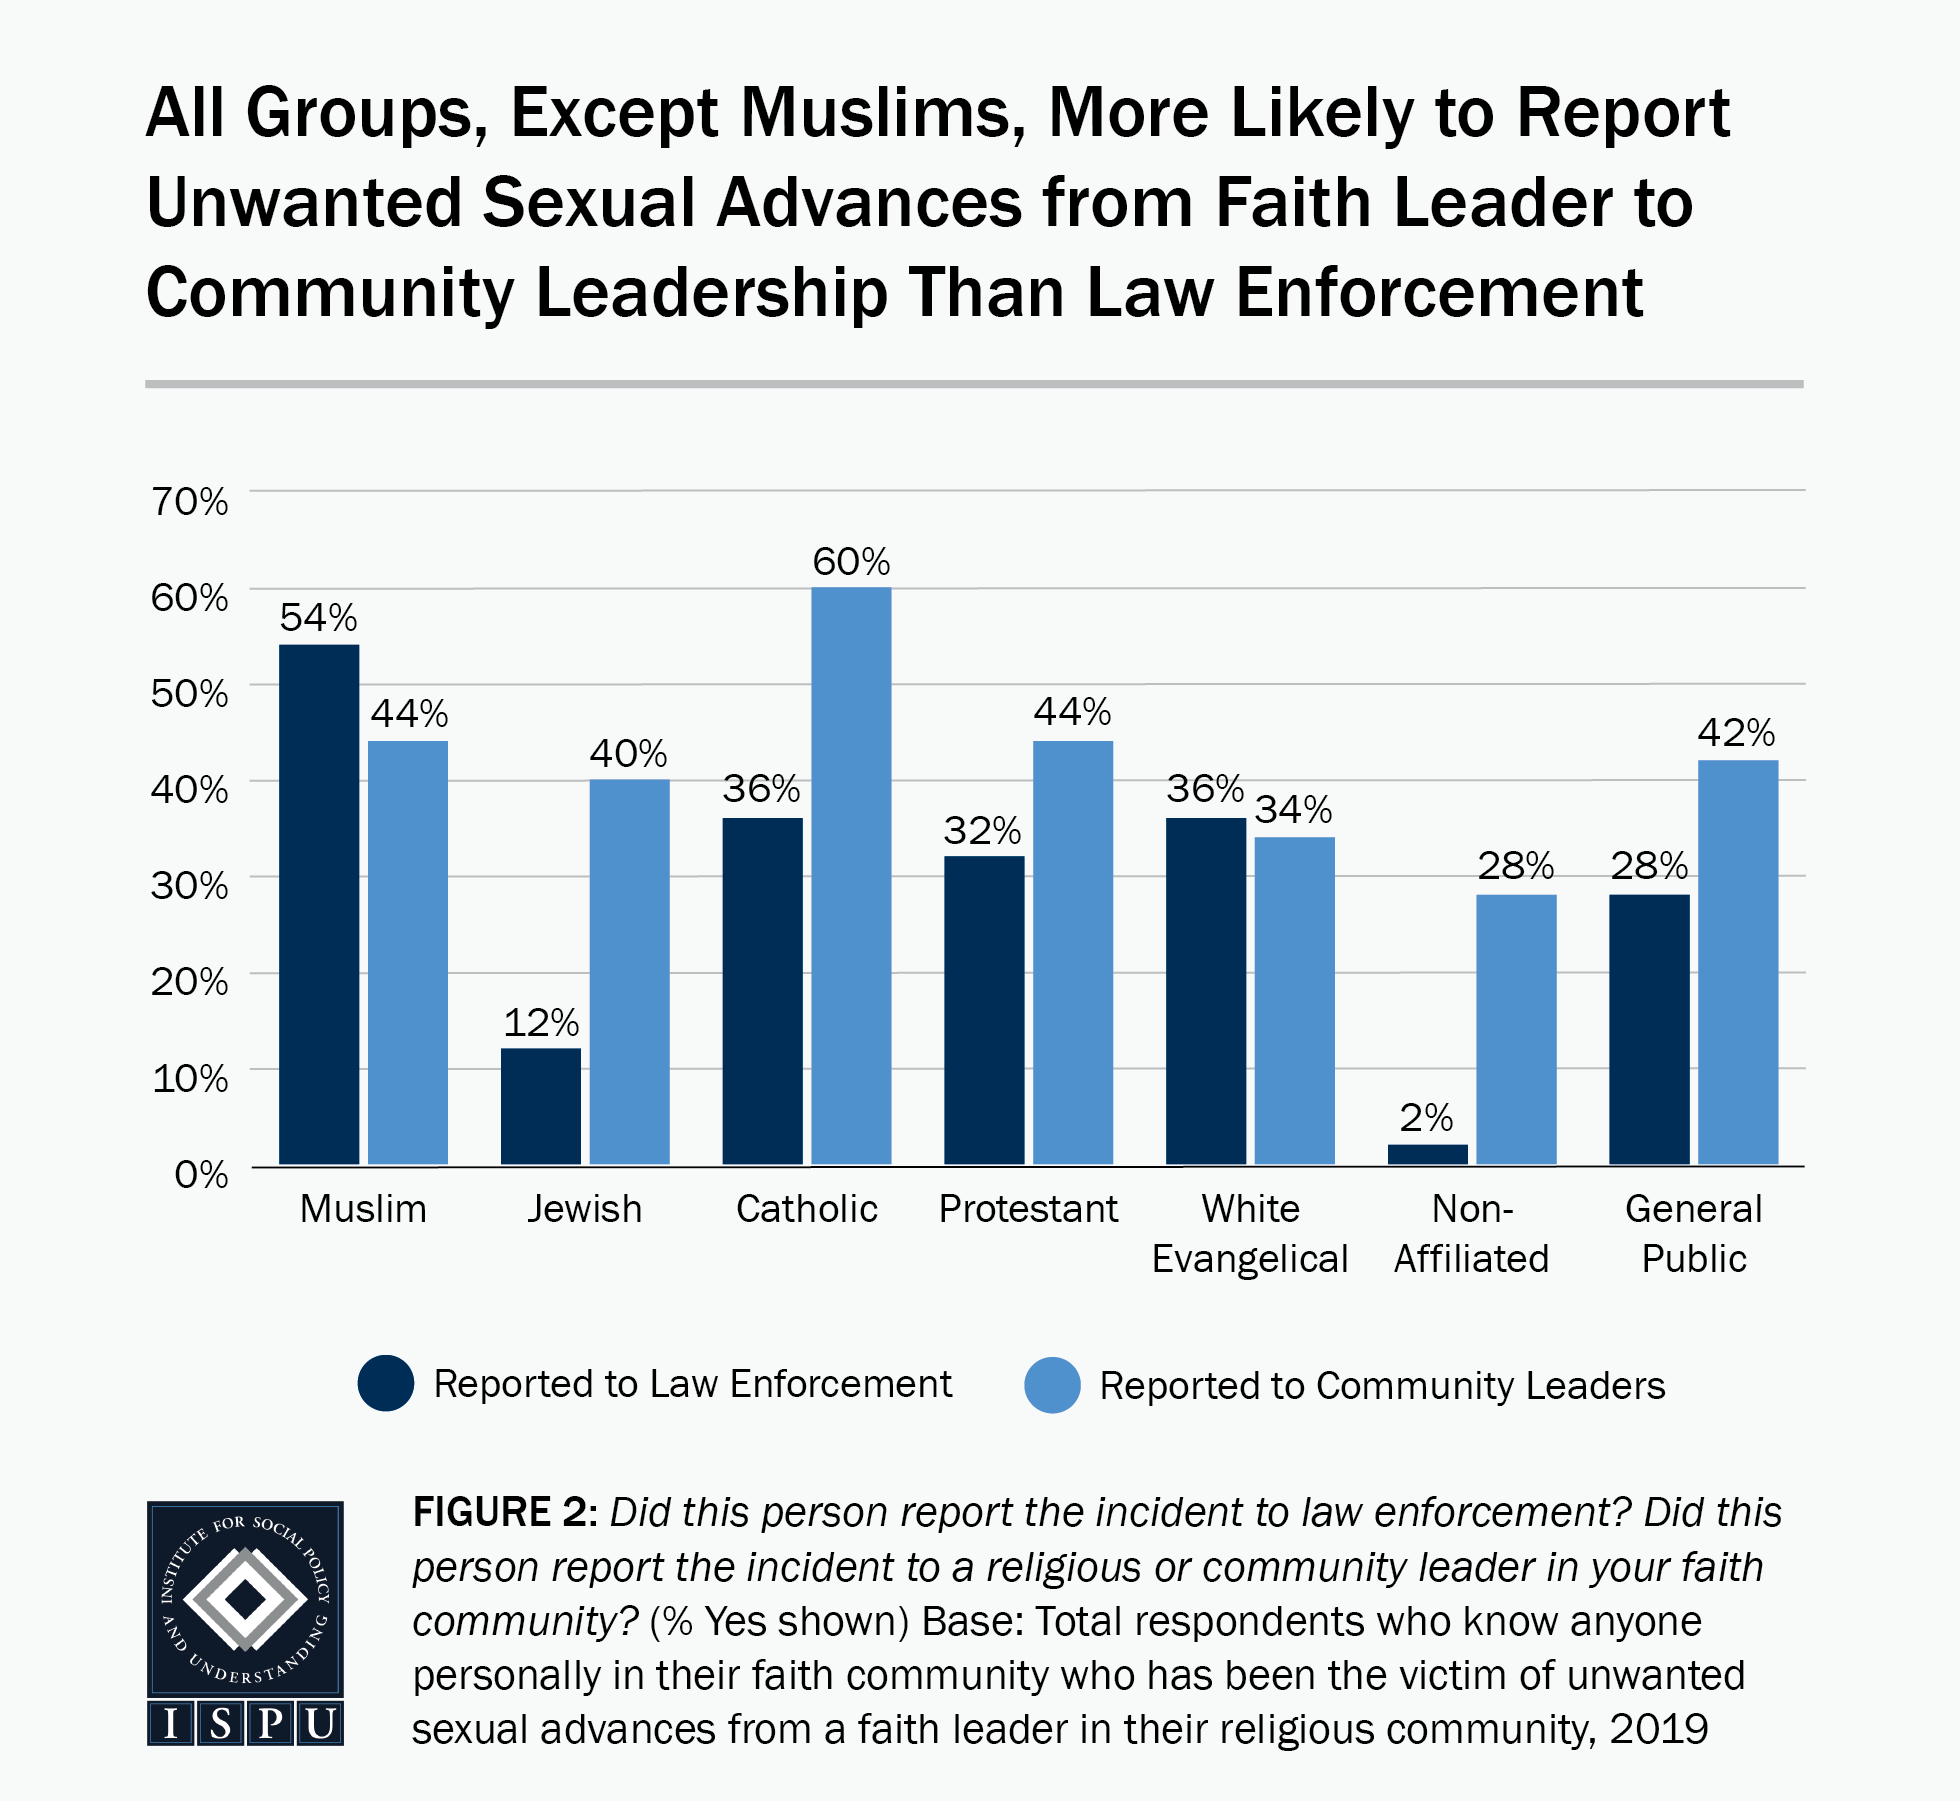 Figure 2: A bar graph showing that all groups, except Muslims, are more likely to report unwanted sexual advances from faith leaders to their community leadership than to law enforcement